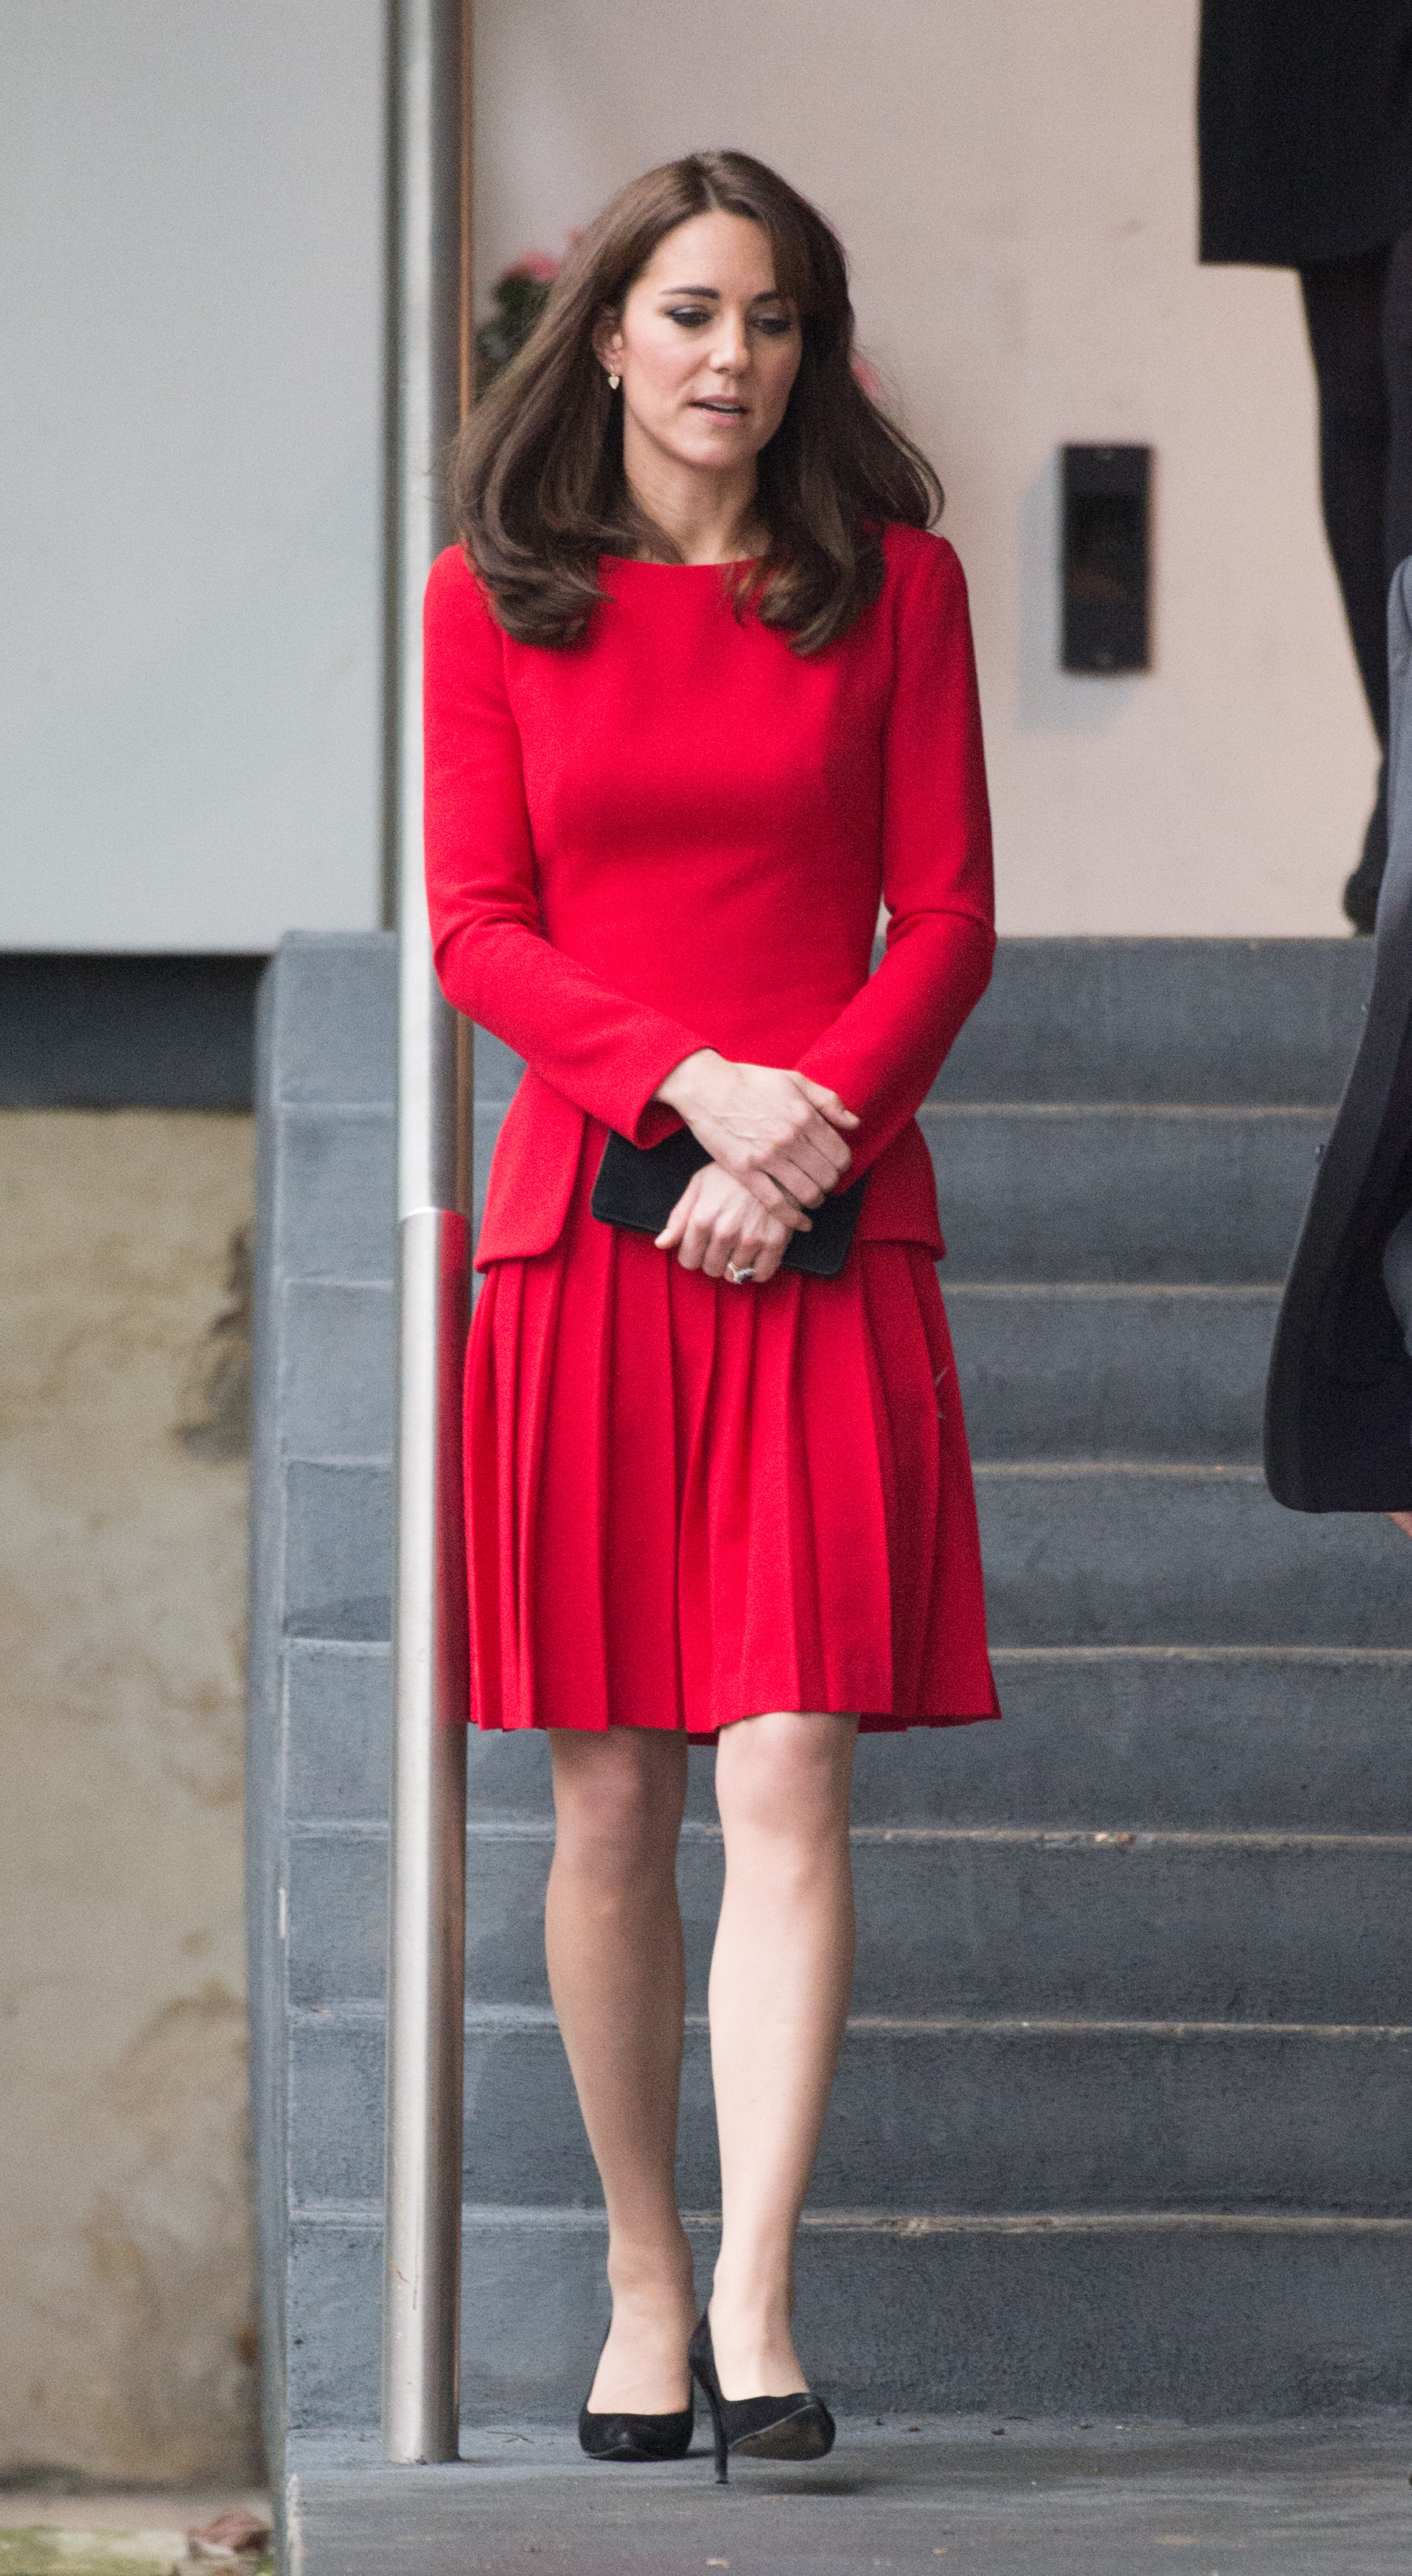 Catherine, Duchess of Cambridge, wearing a red Alexander McQueen dress, visits The Anna Freud Centre in London (Photo by Zak Hussein/Corbis via Getty Images)